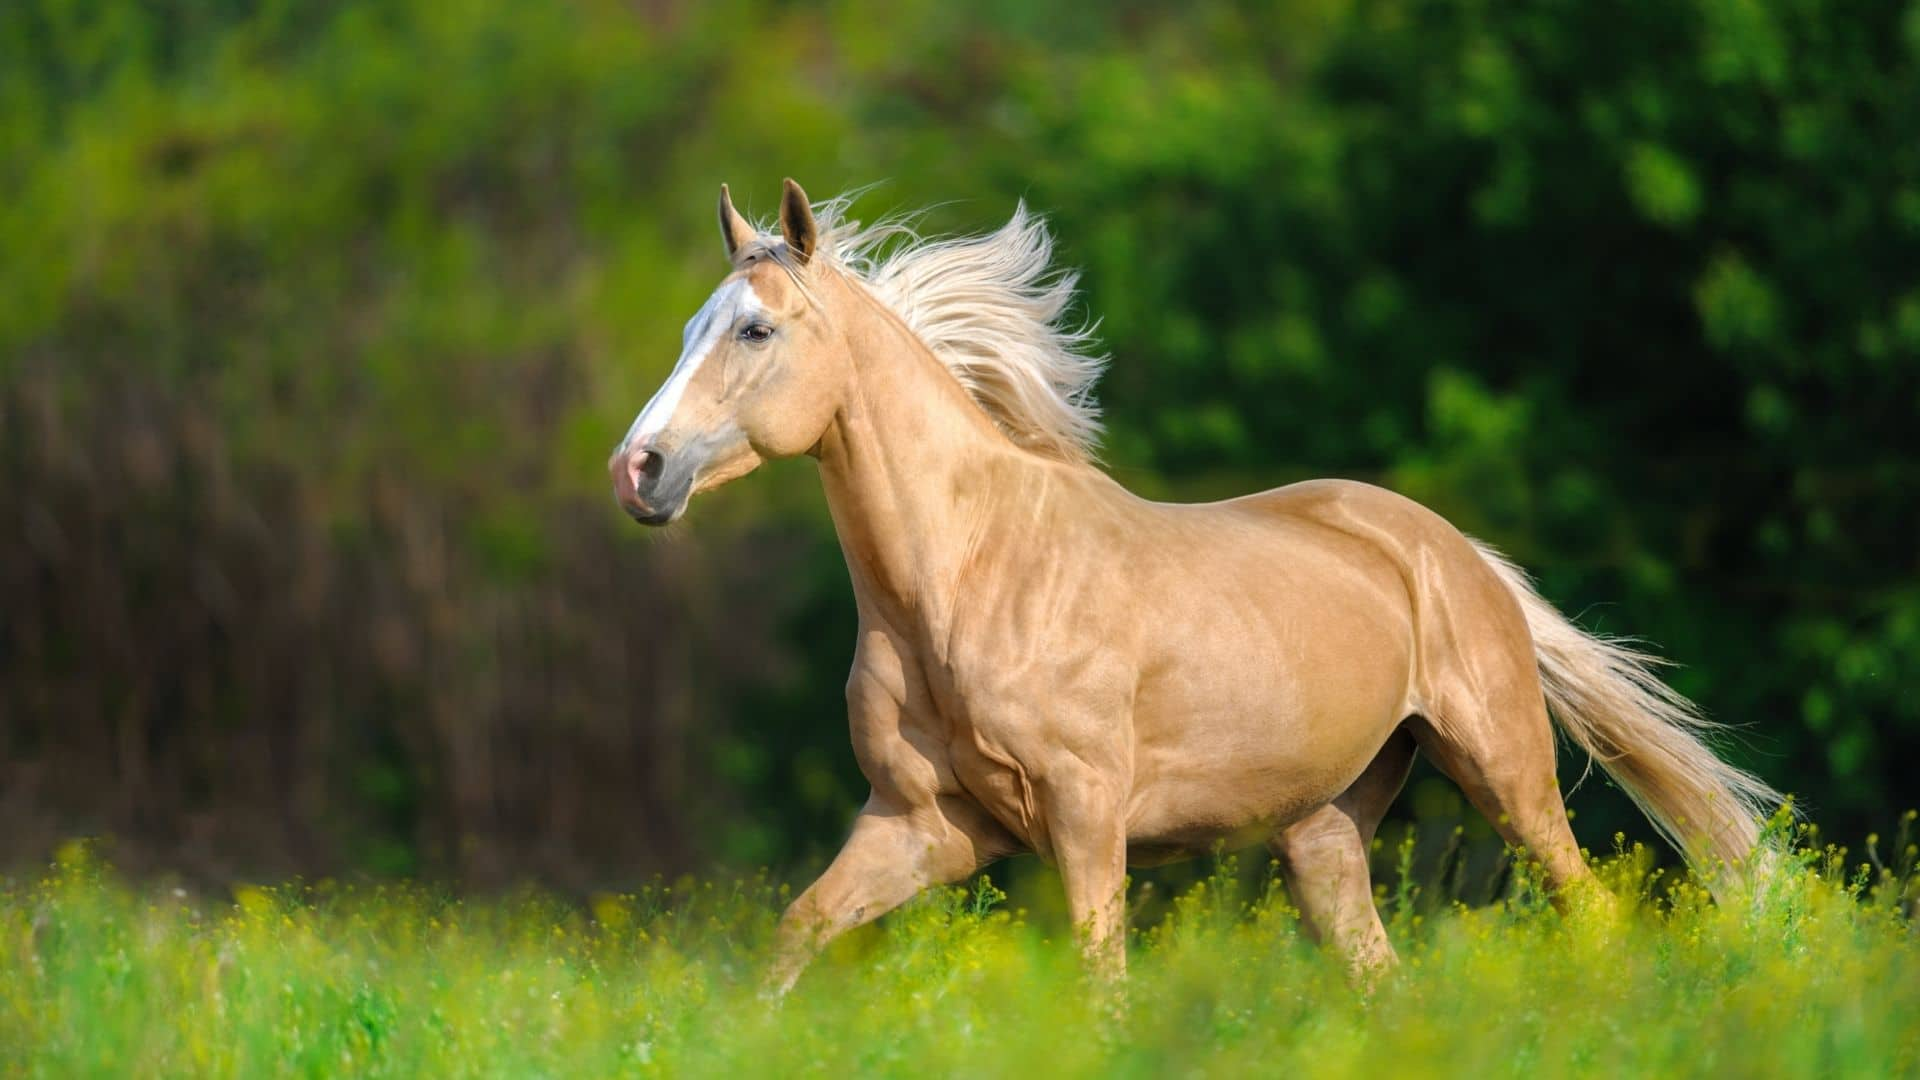 Are Palomino Horses A Breed Expensive Purebred Or A Color